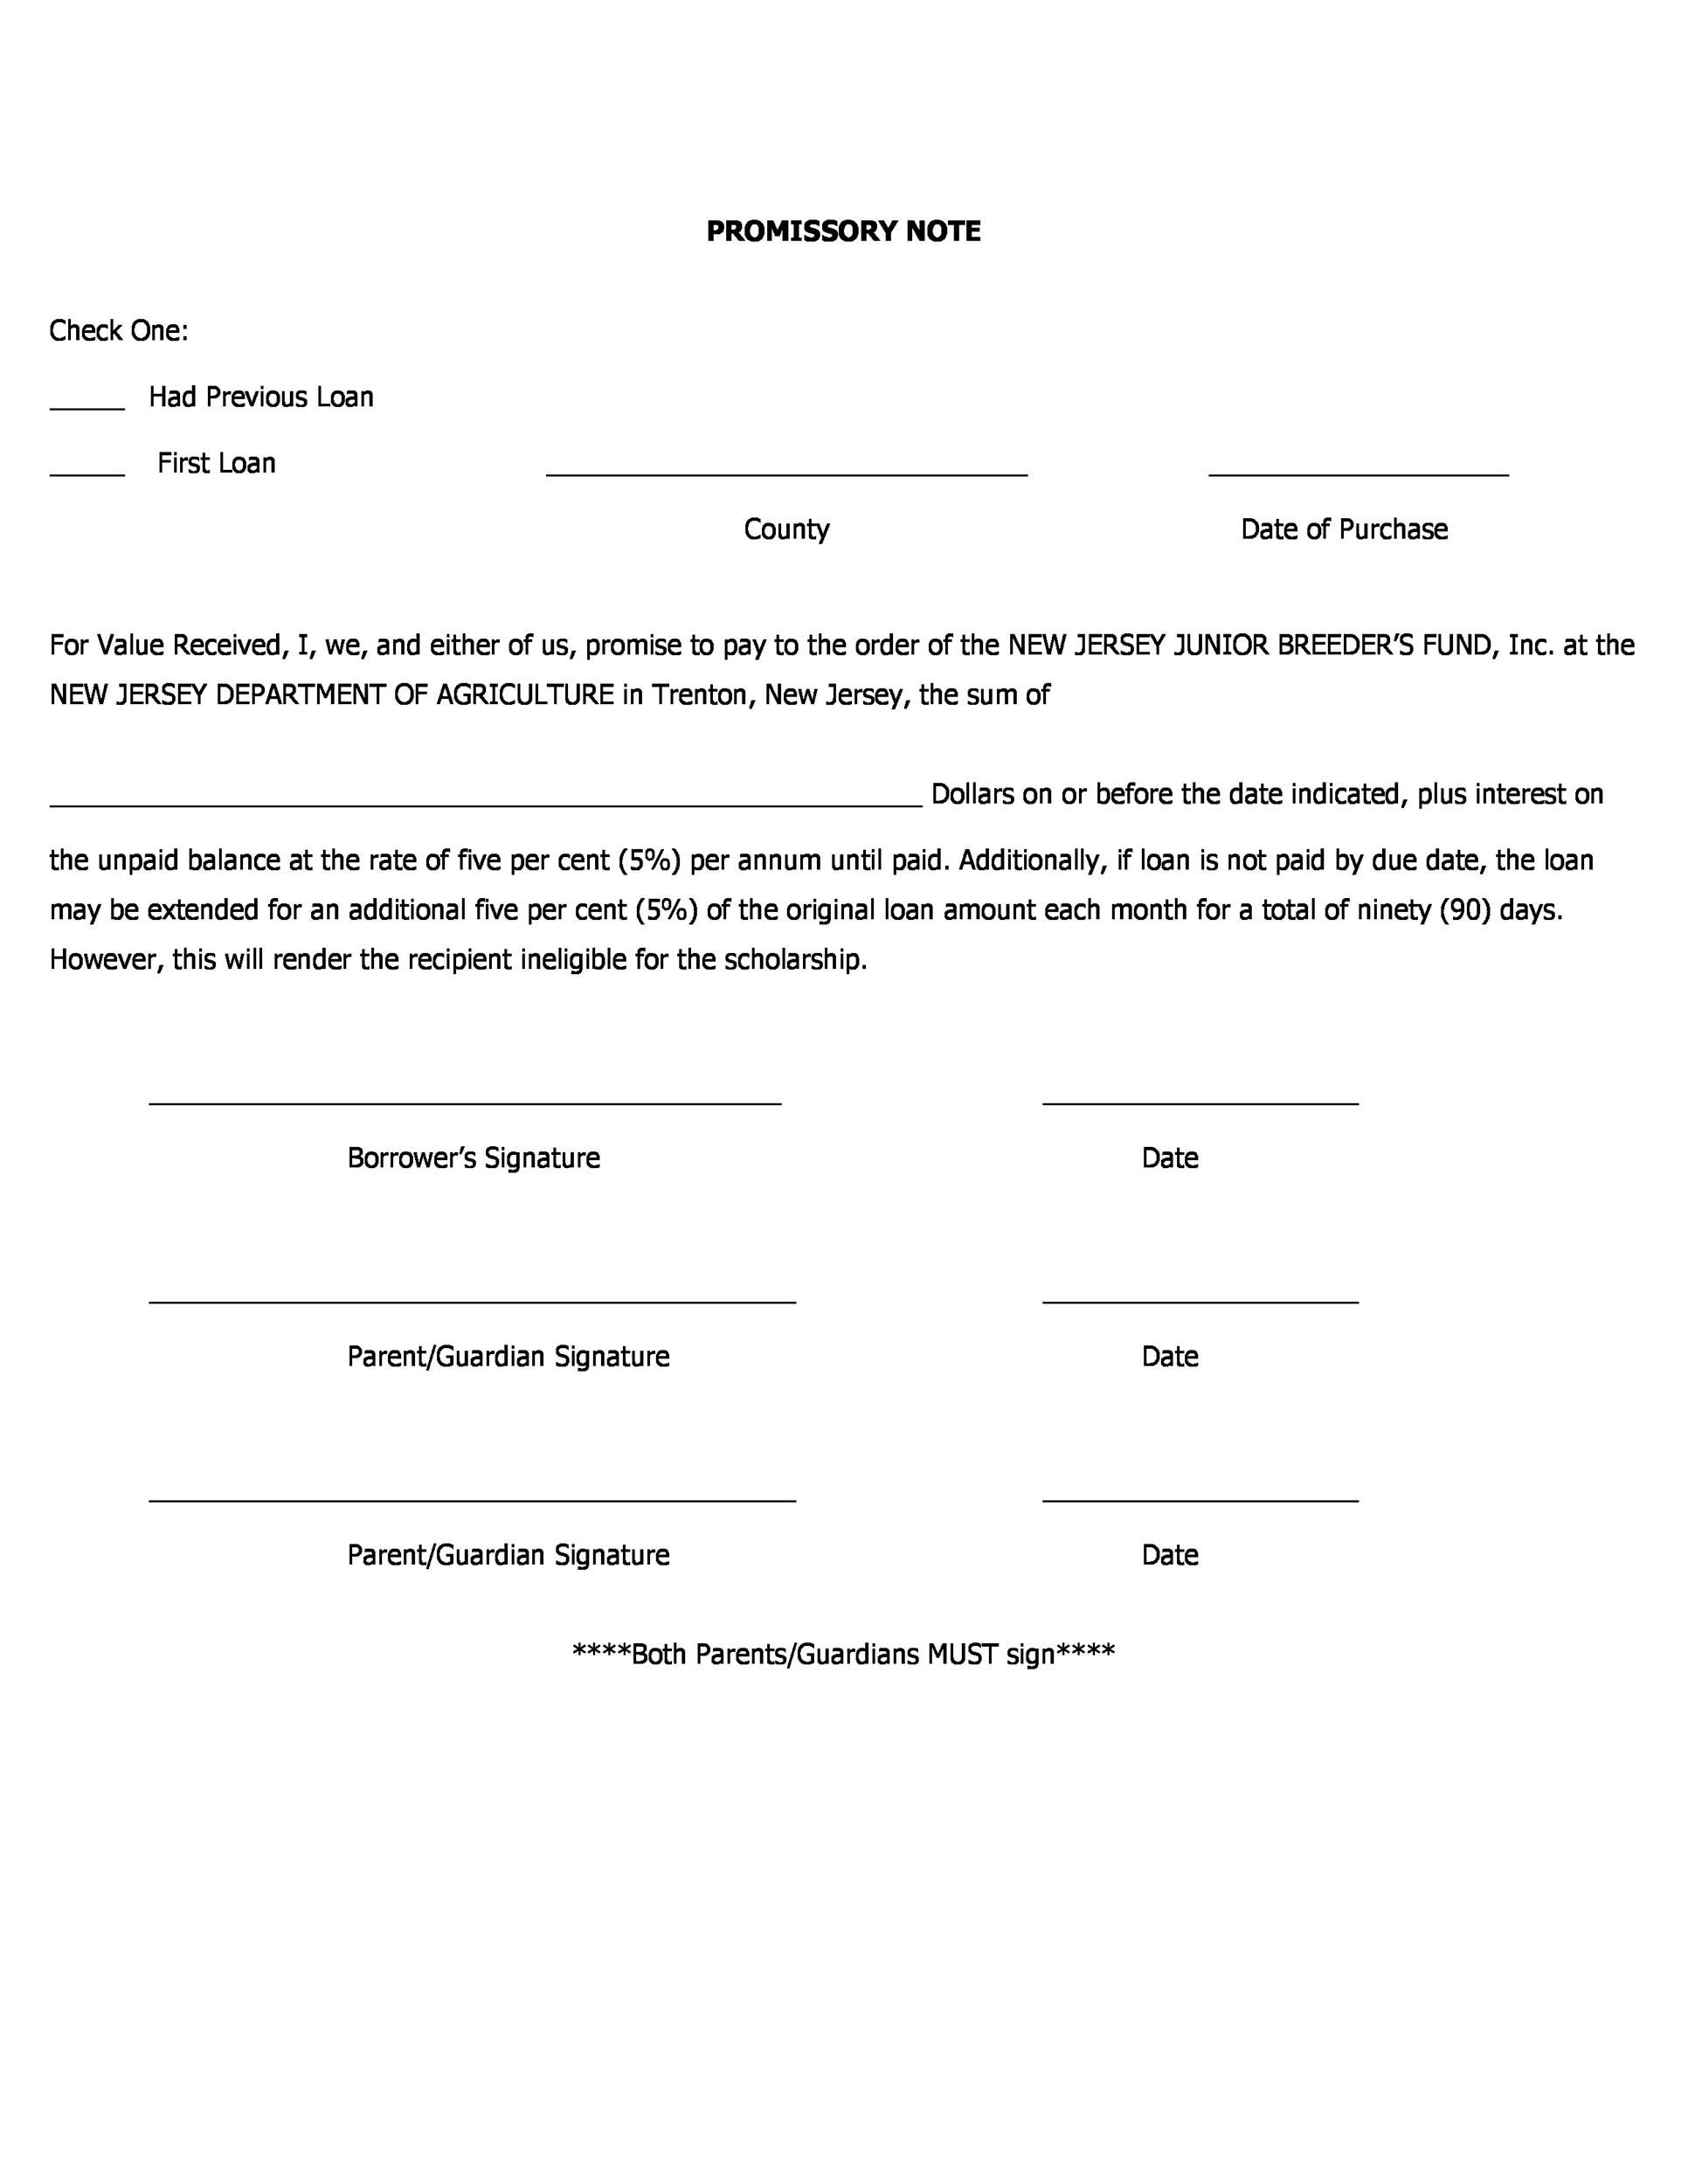 Exceptional Printable Promissory Note Template 31 Ideas Promisary Note Template